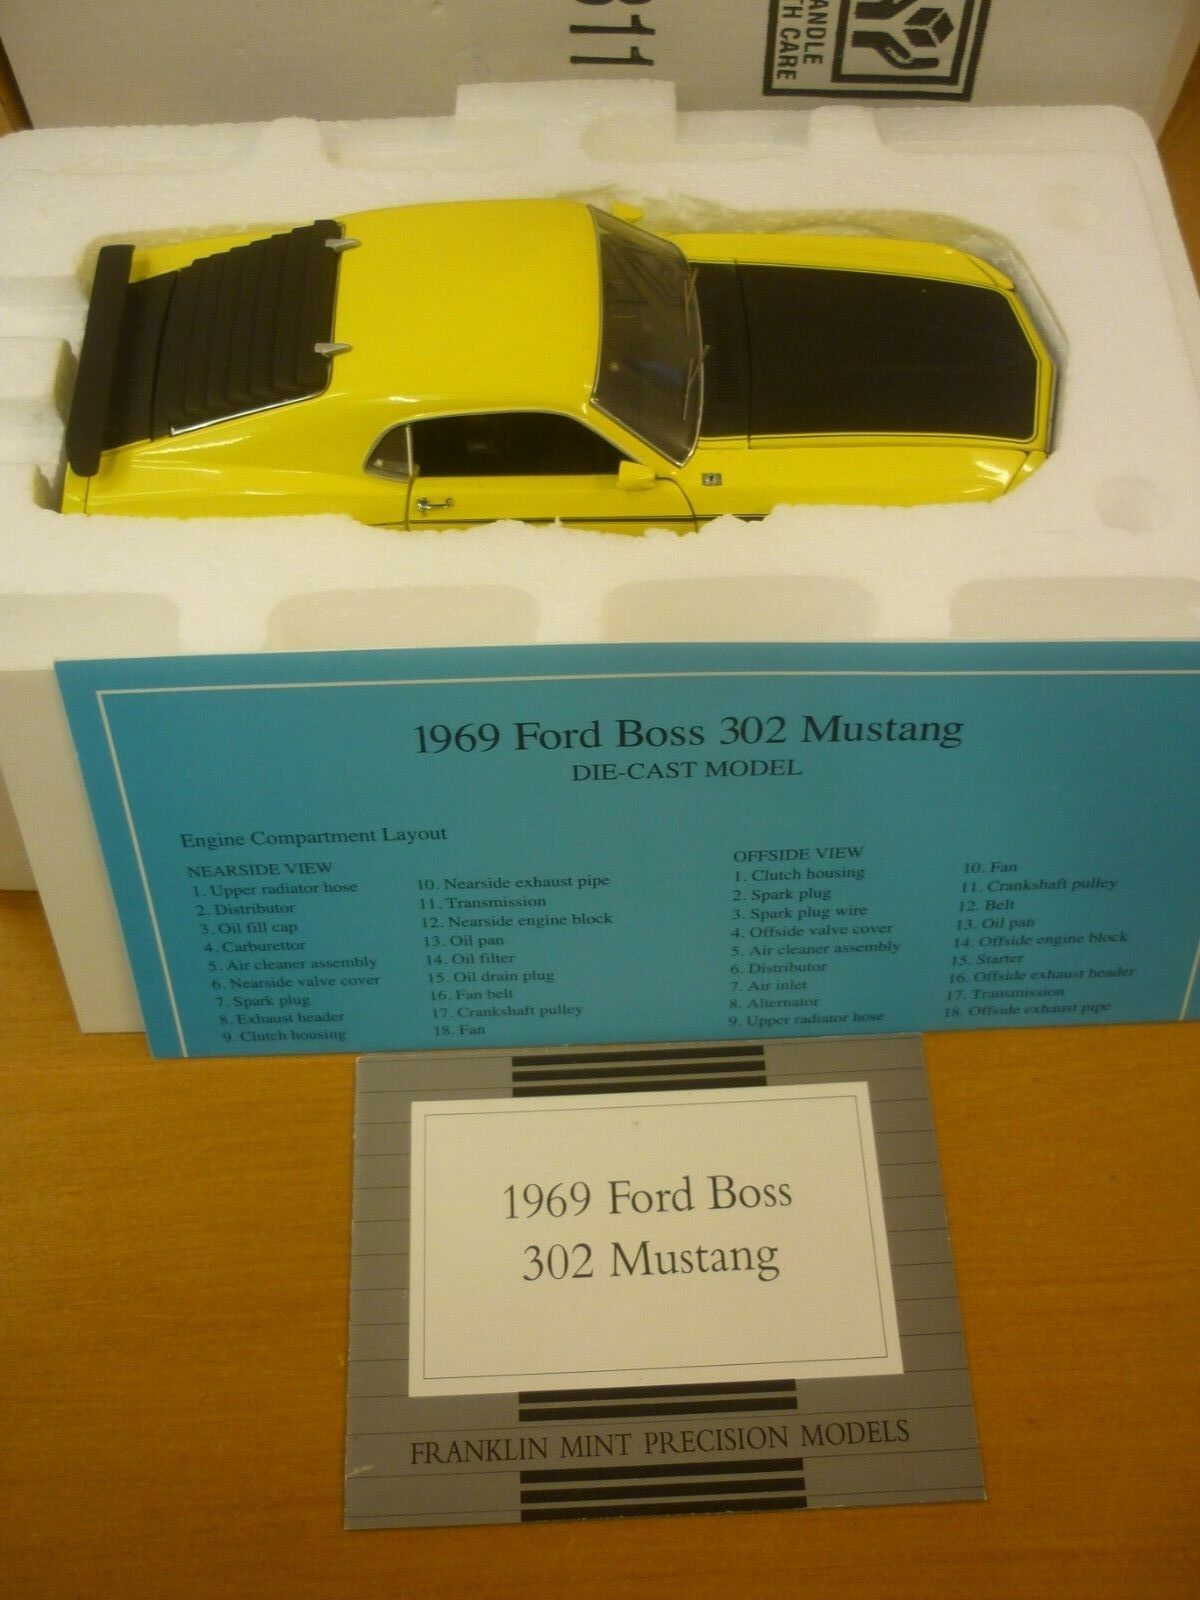 Franklin mint Scale model of a 1969 Ford BOSS 302 mustang, paperwork, boxed